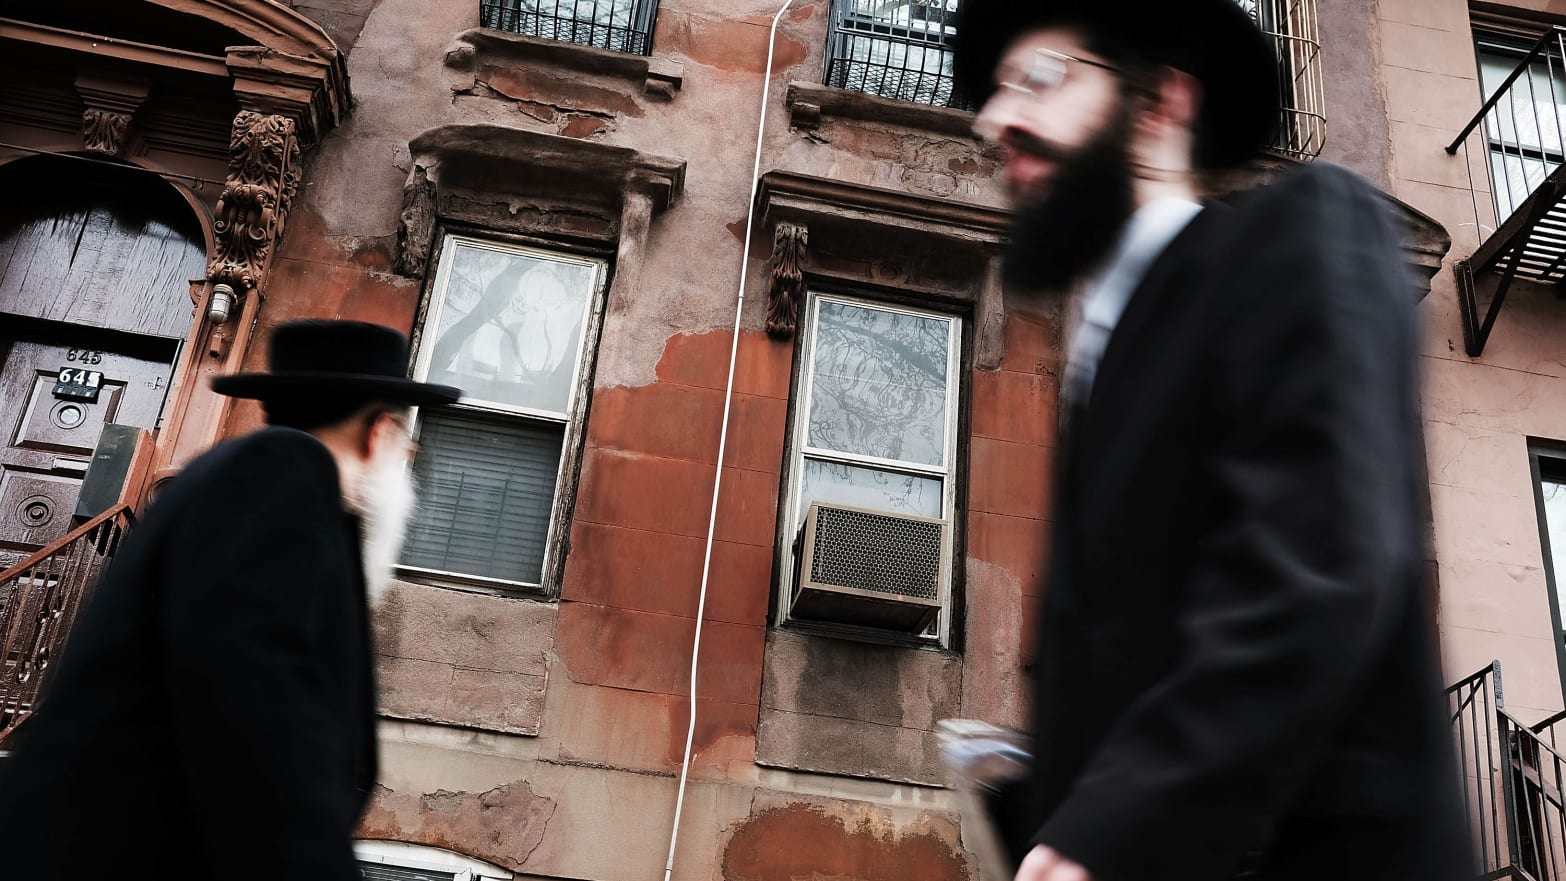 hasidic men walking through a jewish orthodox neighborhood in williamsburg brooklyn measles mmr vaccine anti vaxxer vaccination